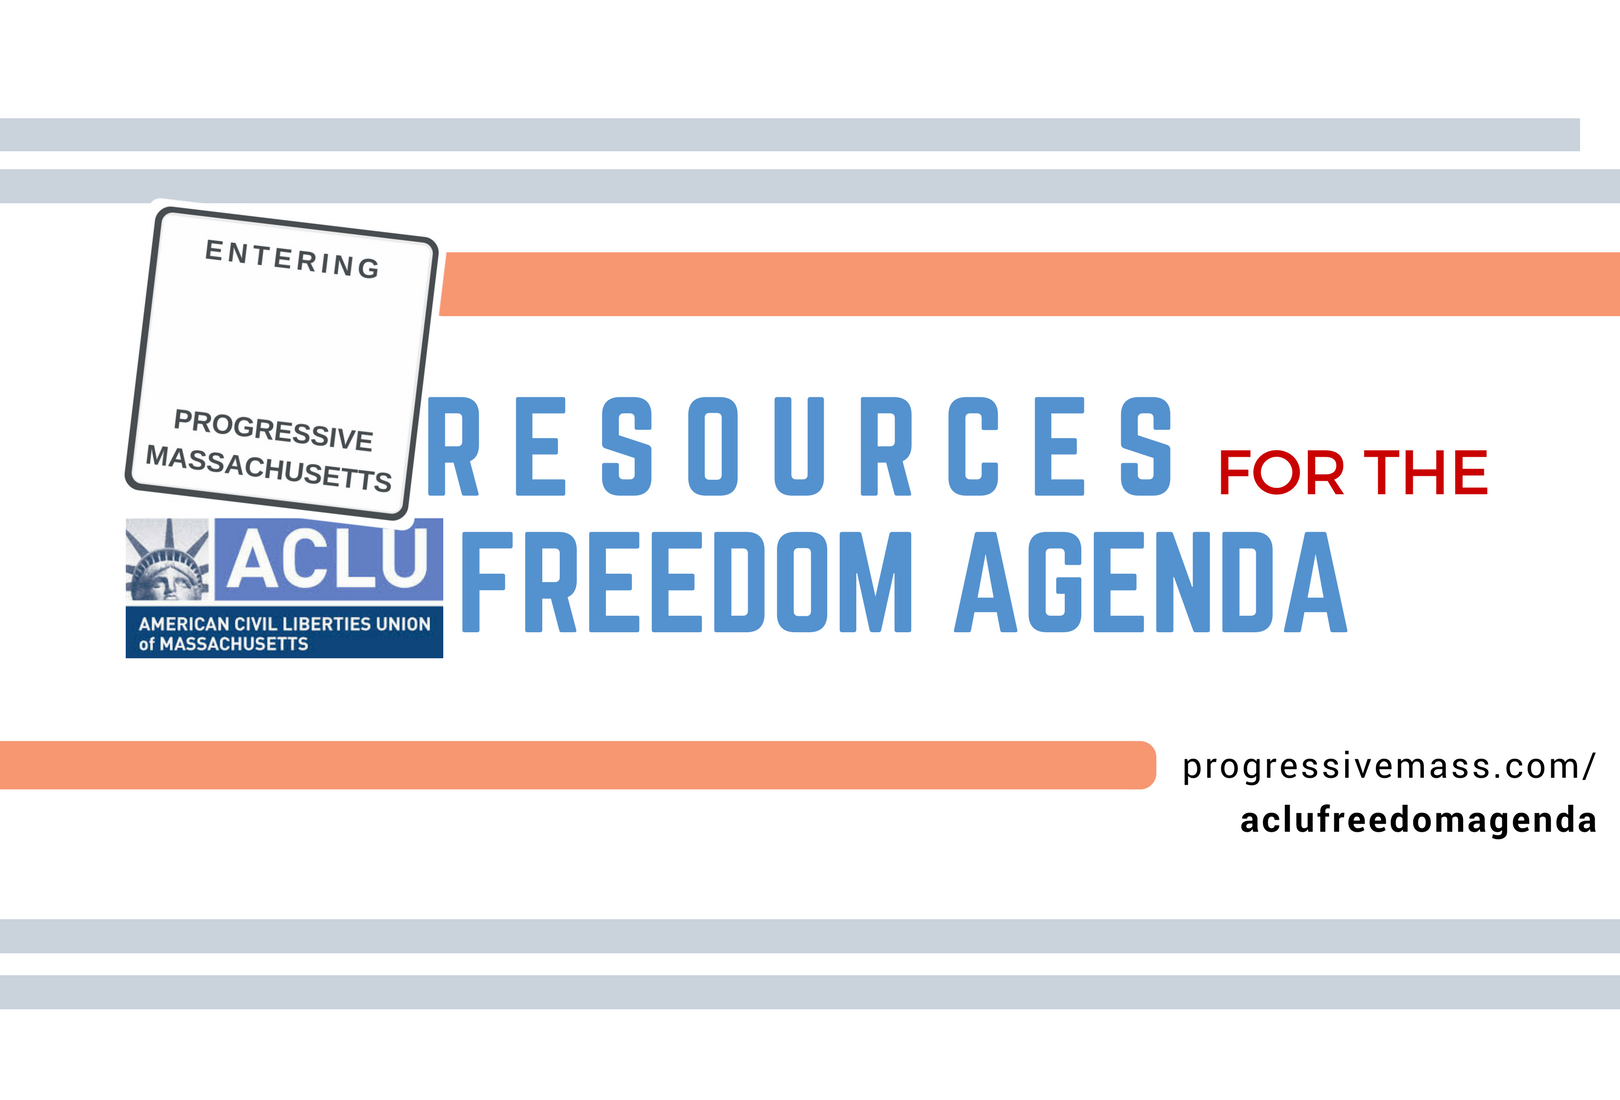 ACLU Freedom Agenda and Progressive MA Bill Tracking